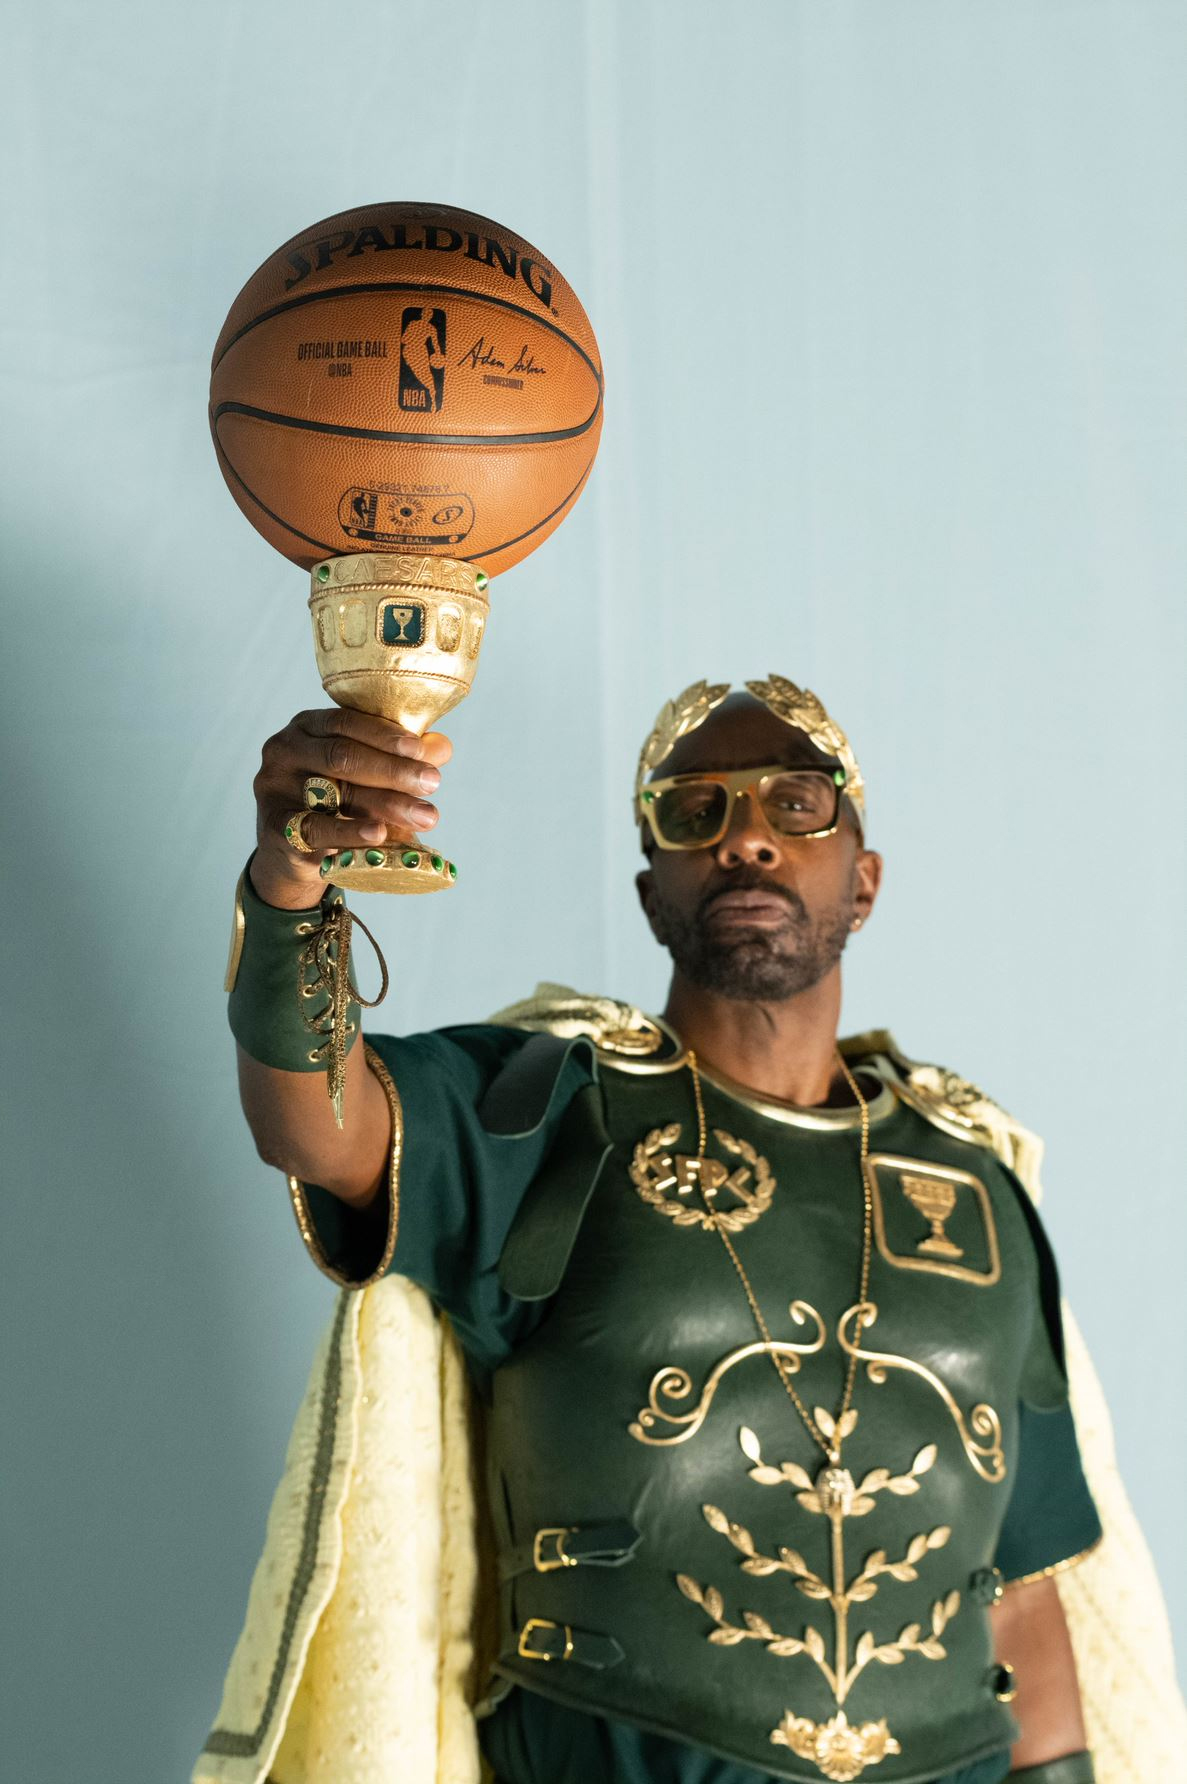 Caesar raises his goblet in a cheers to sports fans in the Caesars Sportsbook brand campaign.